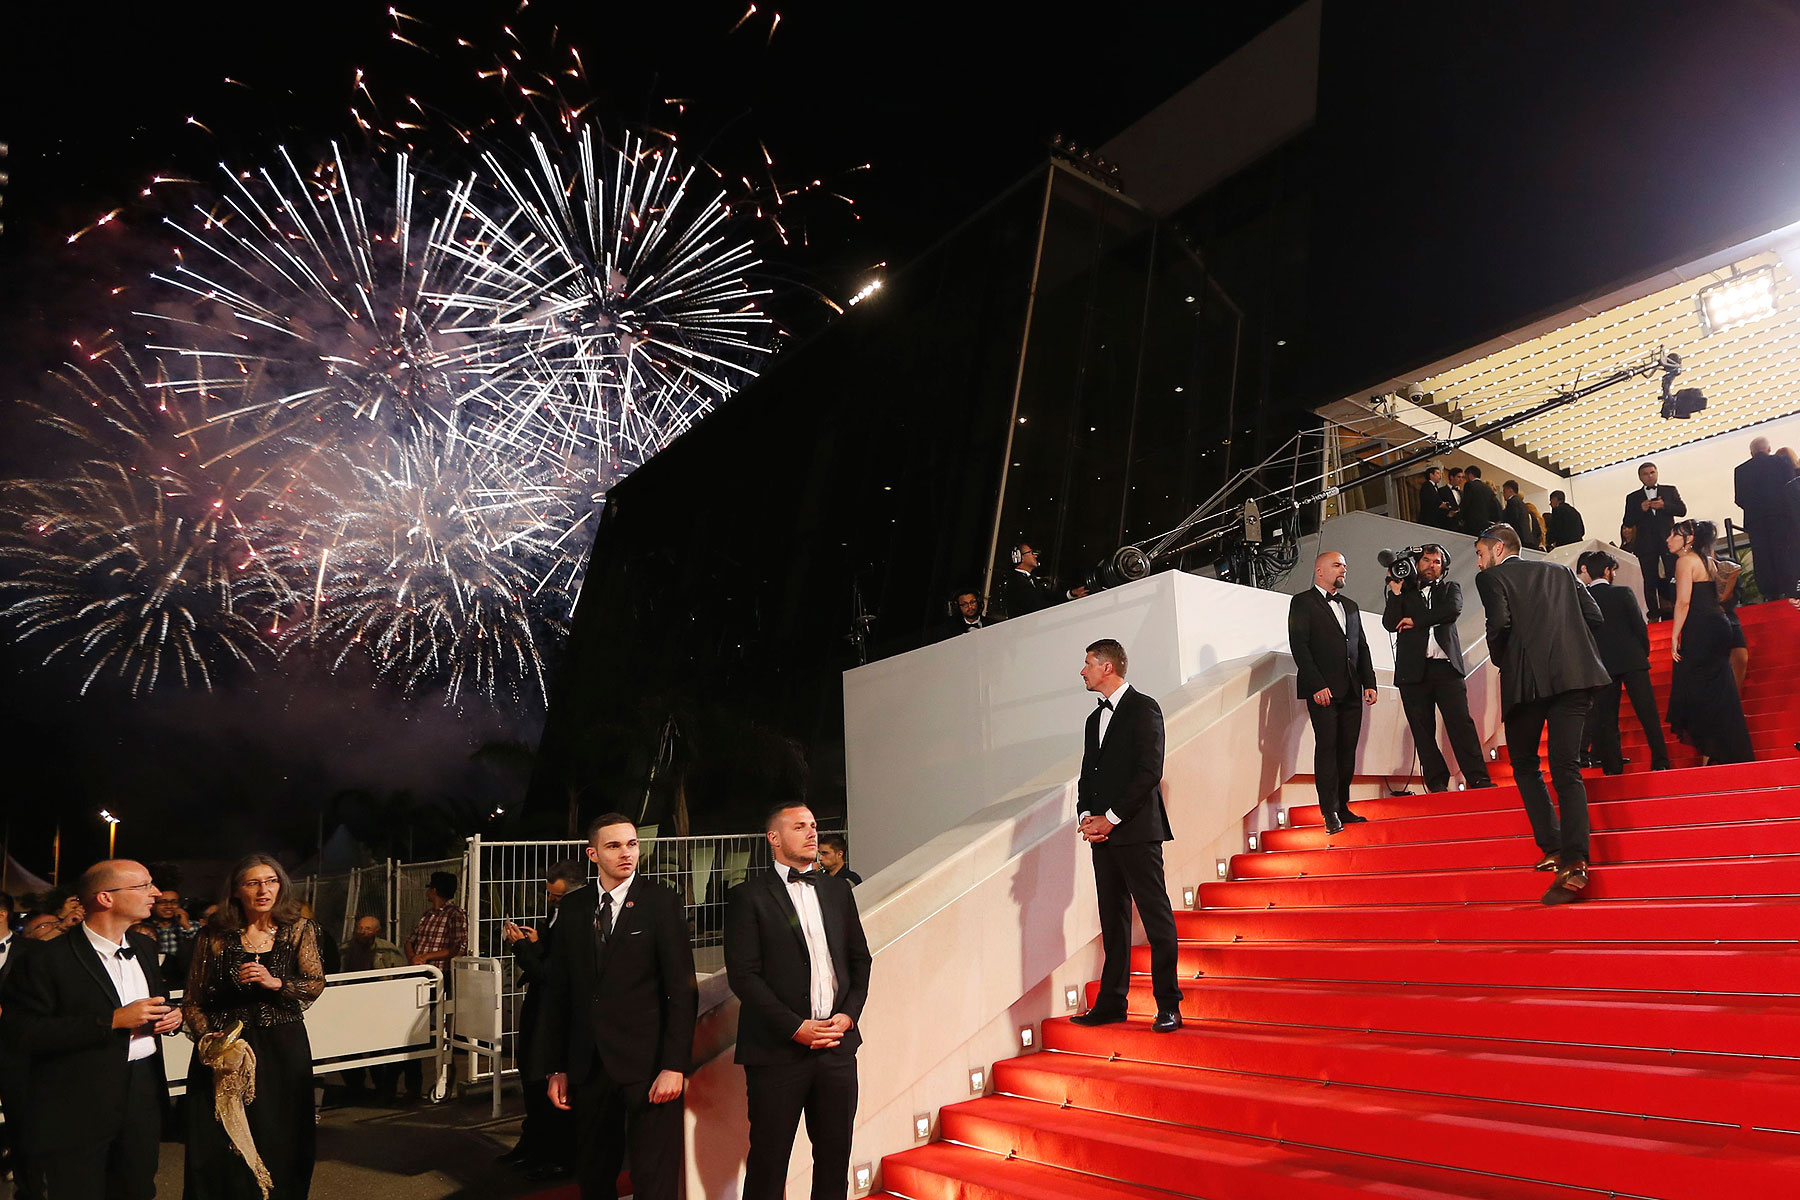 Guests walk on the red carpet during a fireworks show as they arrive for the screening of the film Timbuktu in competition at the 67th Cannes Film Festival in Cannes May 15, 2014